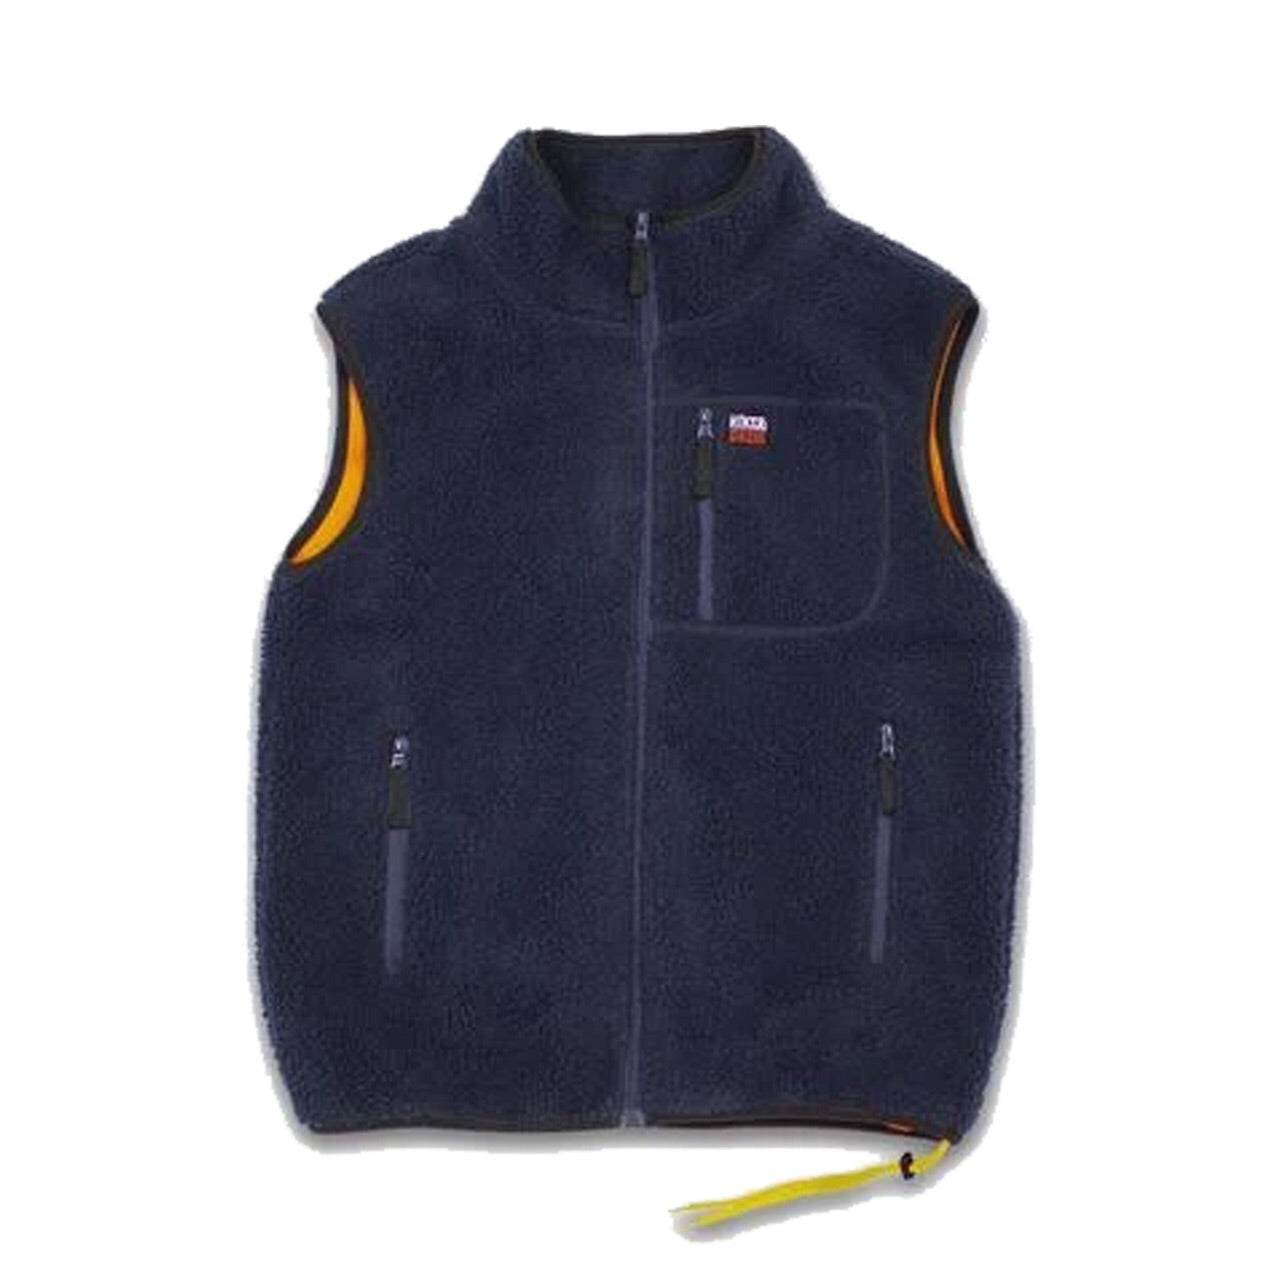 HIKERDELIC NEWBY FLEECE GILET - NAVY/ORANGE